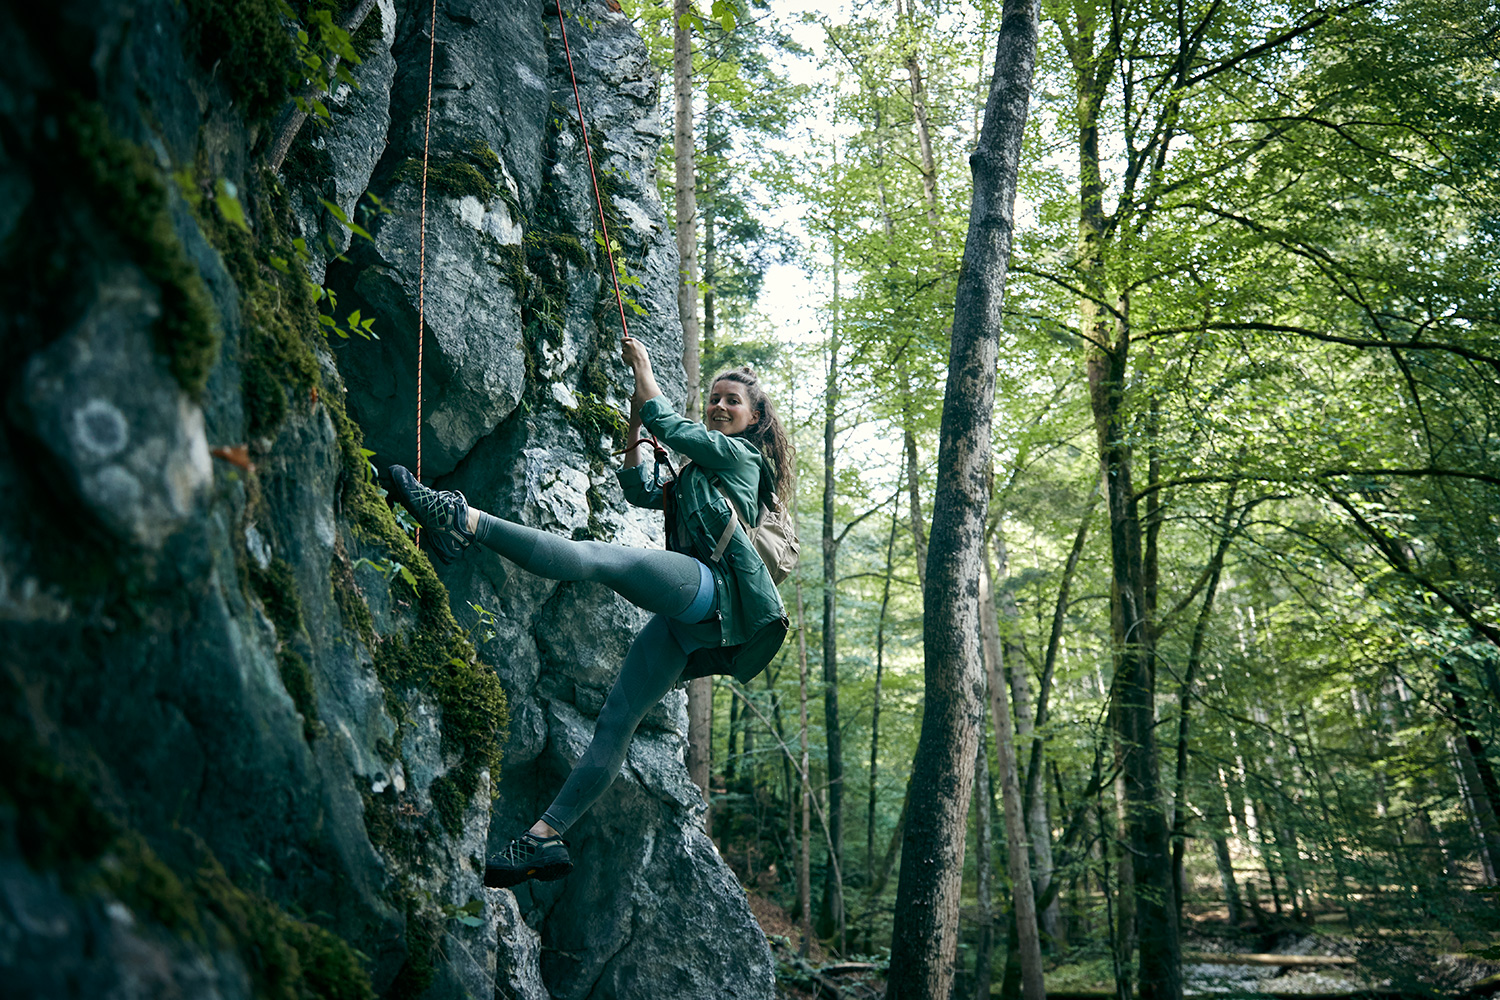 Woman doing the splits while abseiling down a rock